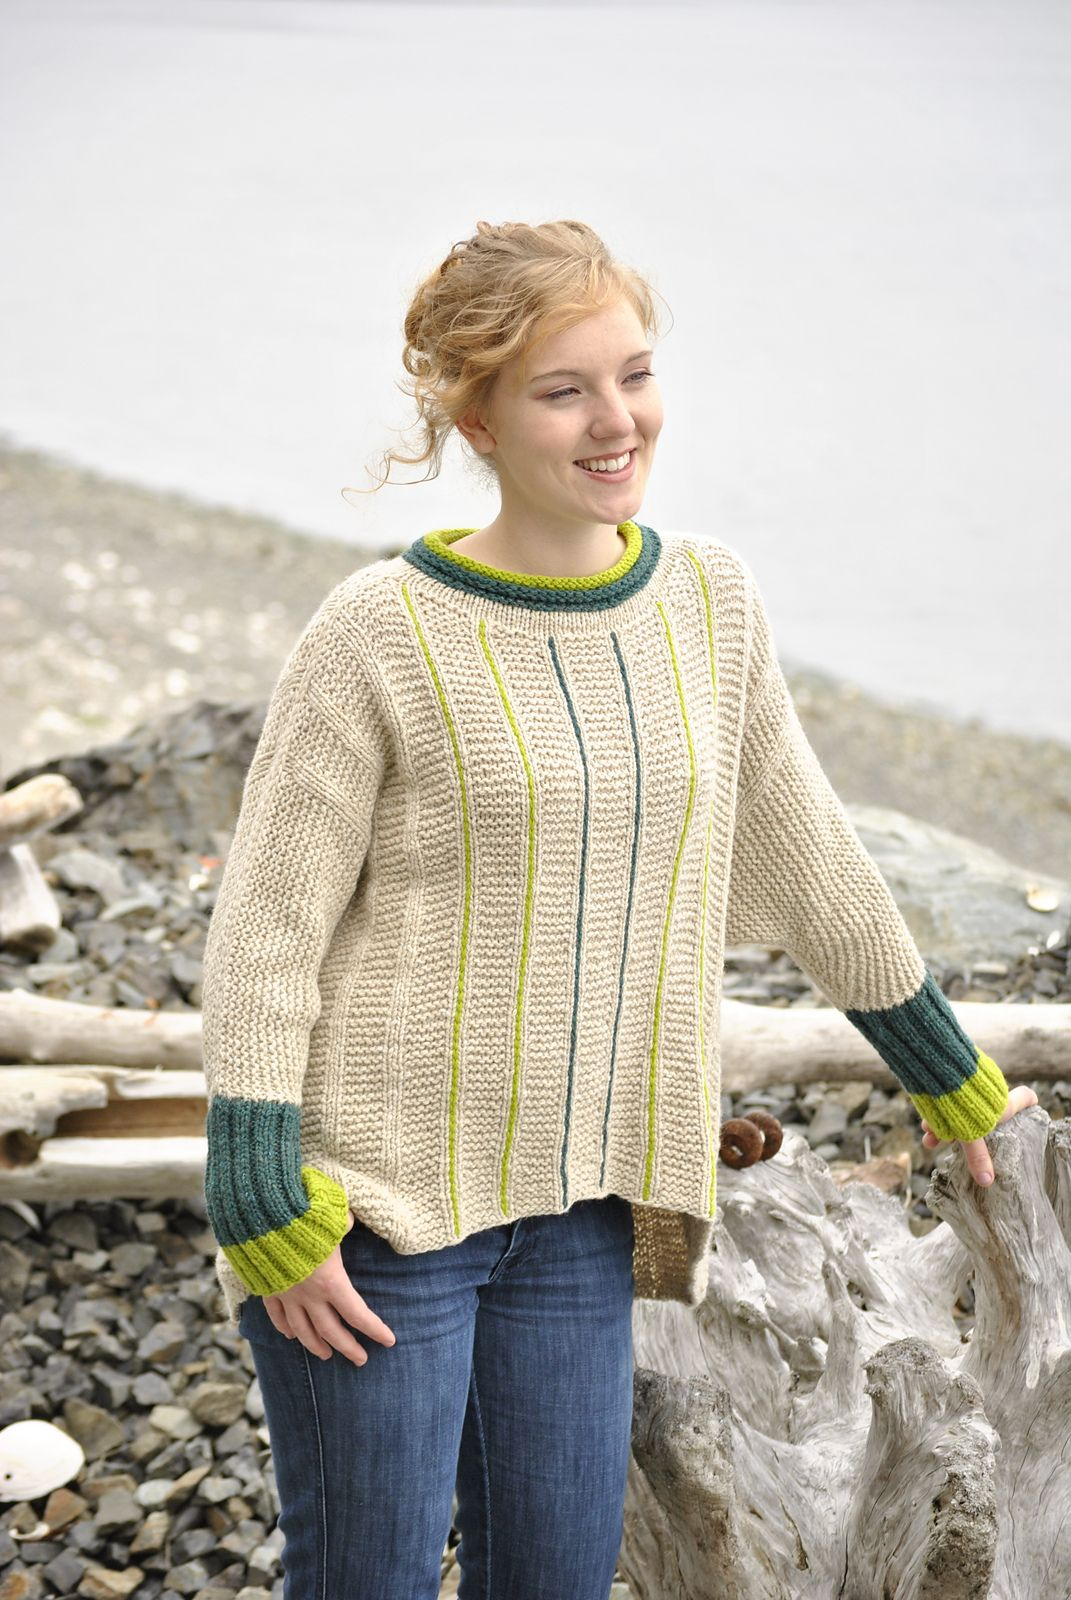 One Size Fits Many pattern by Karin Haack | Pattern library, Ravelry ...